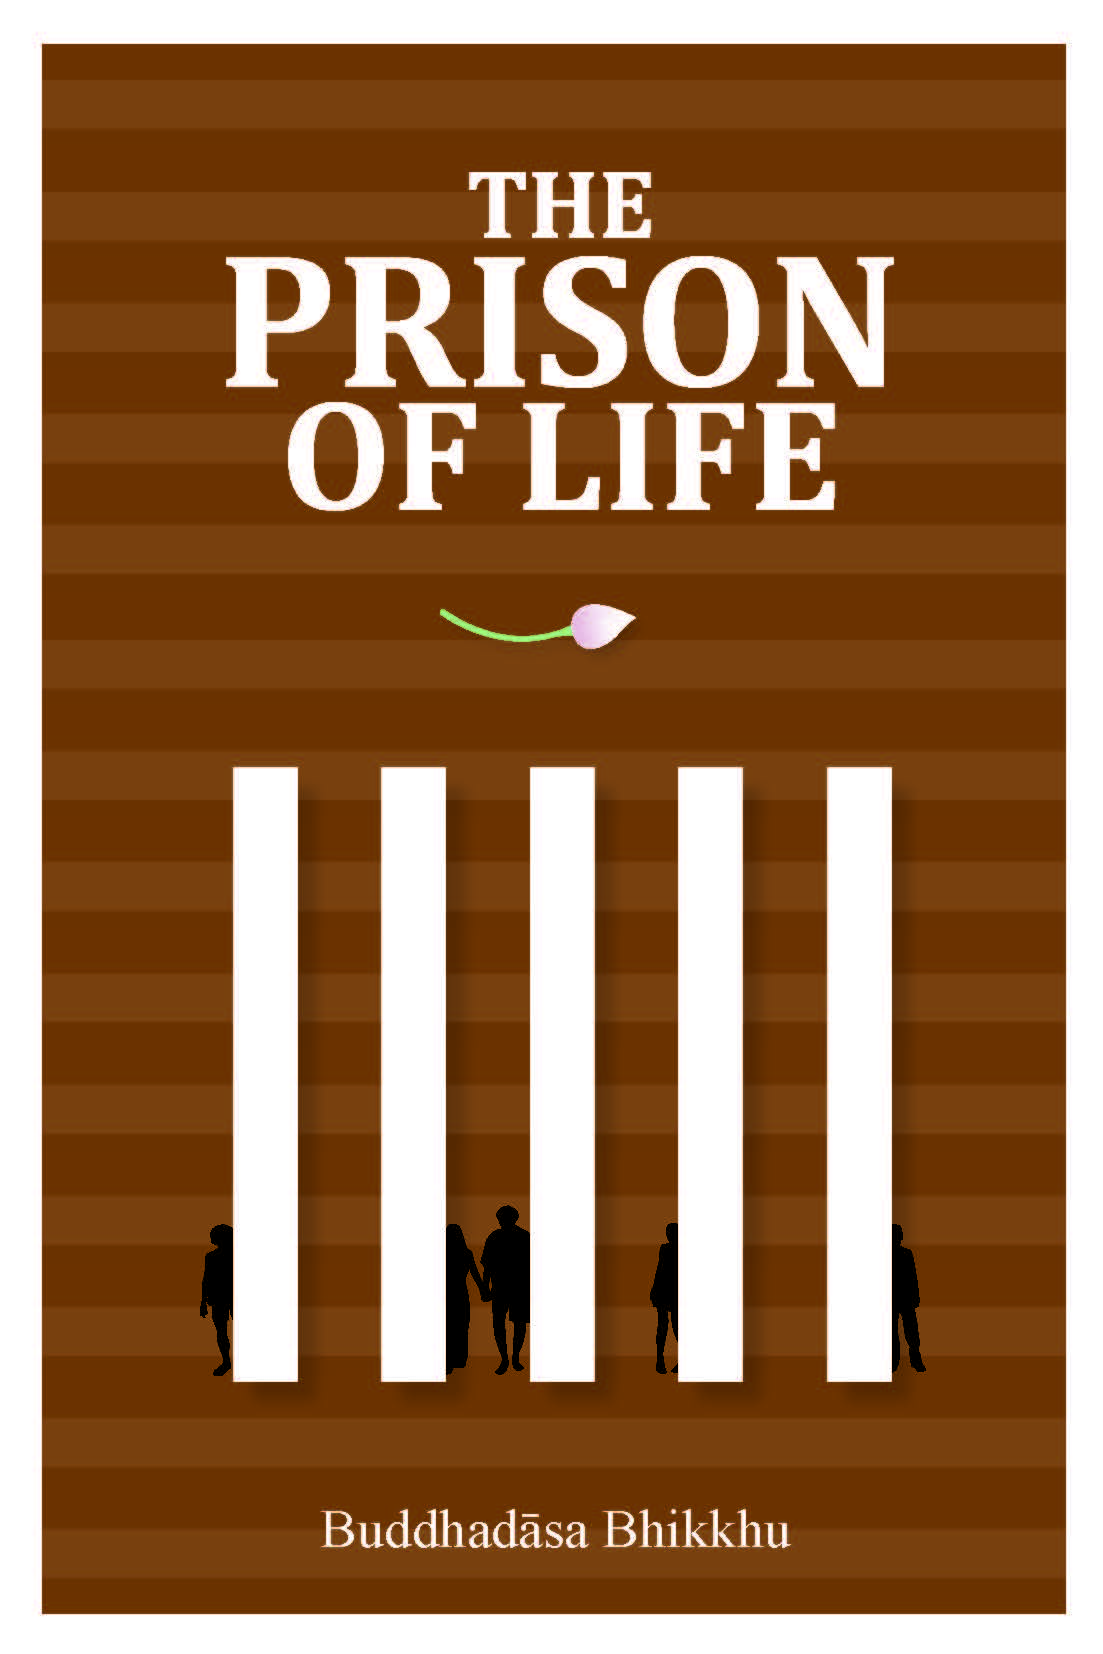 20141024_Prison of life_Page_01.jpg